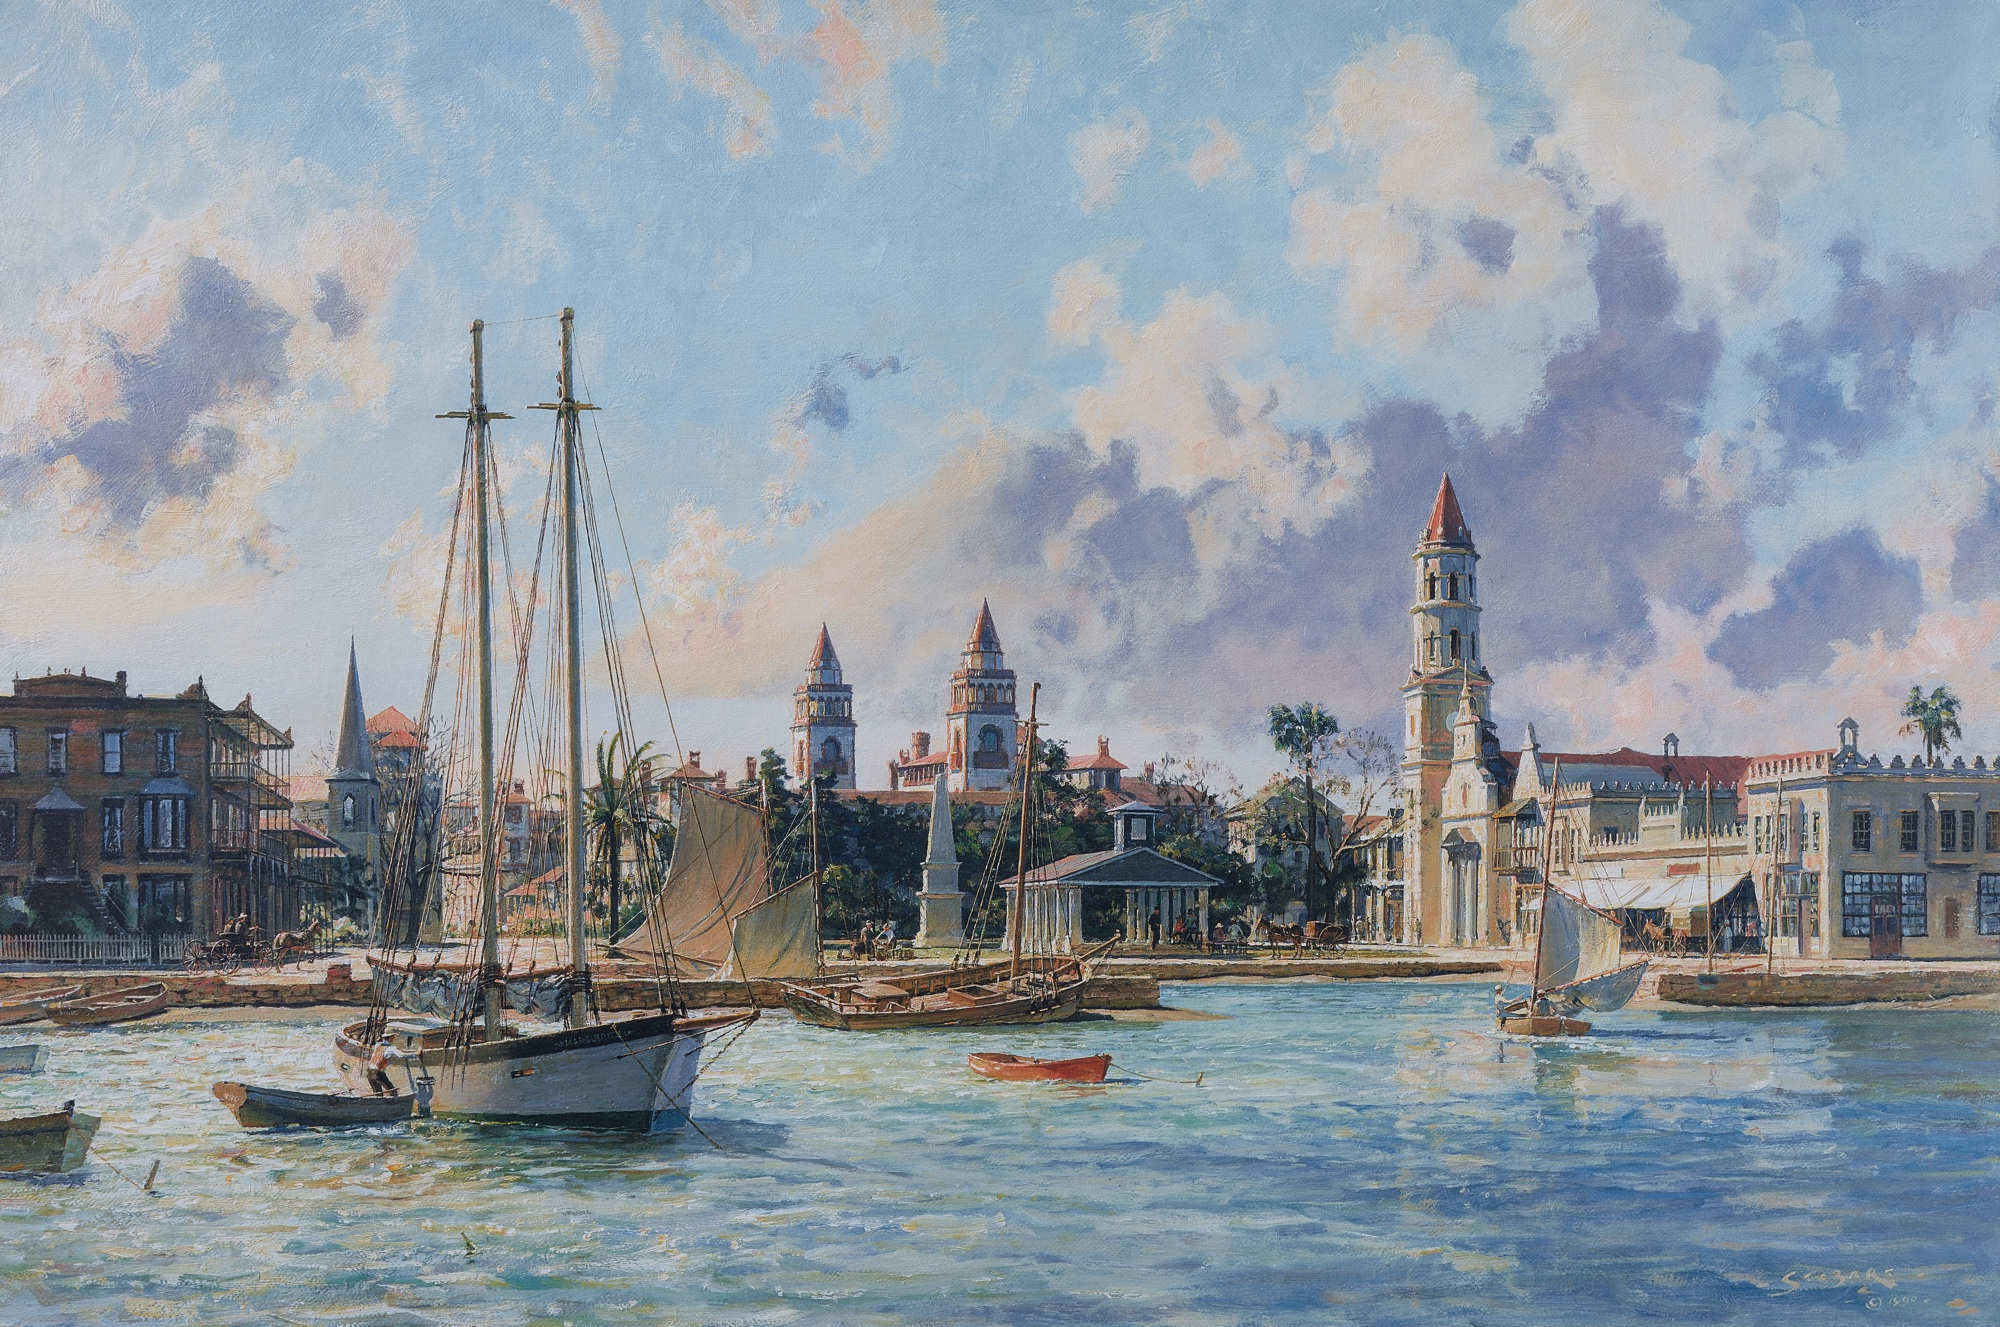 44. John Stobart, St. Augustine: A View of the Plaza in 1890